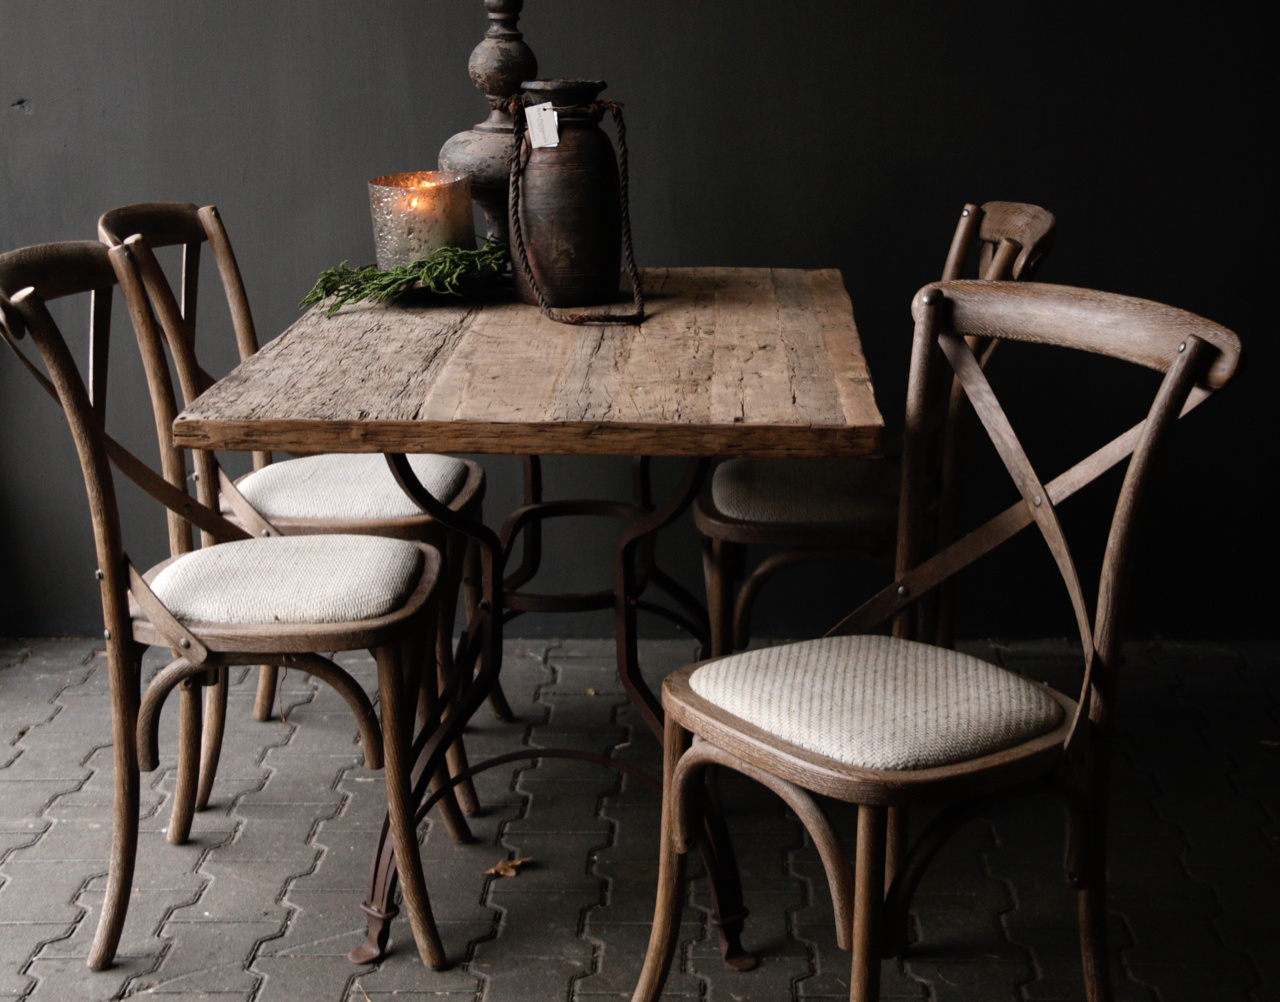 Loose old wooden table top-6